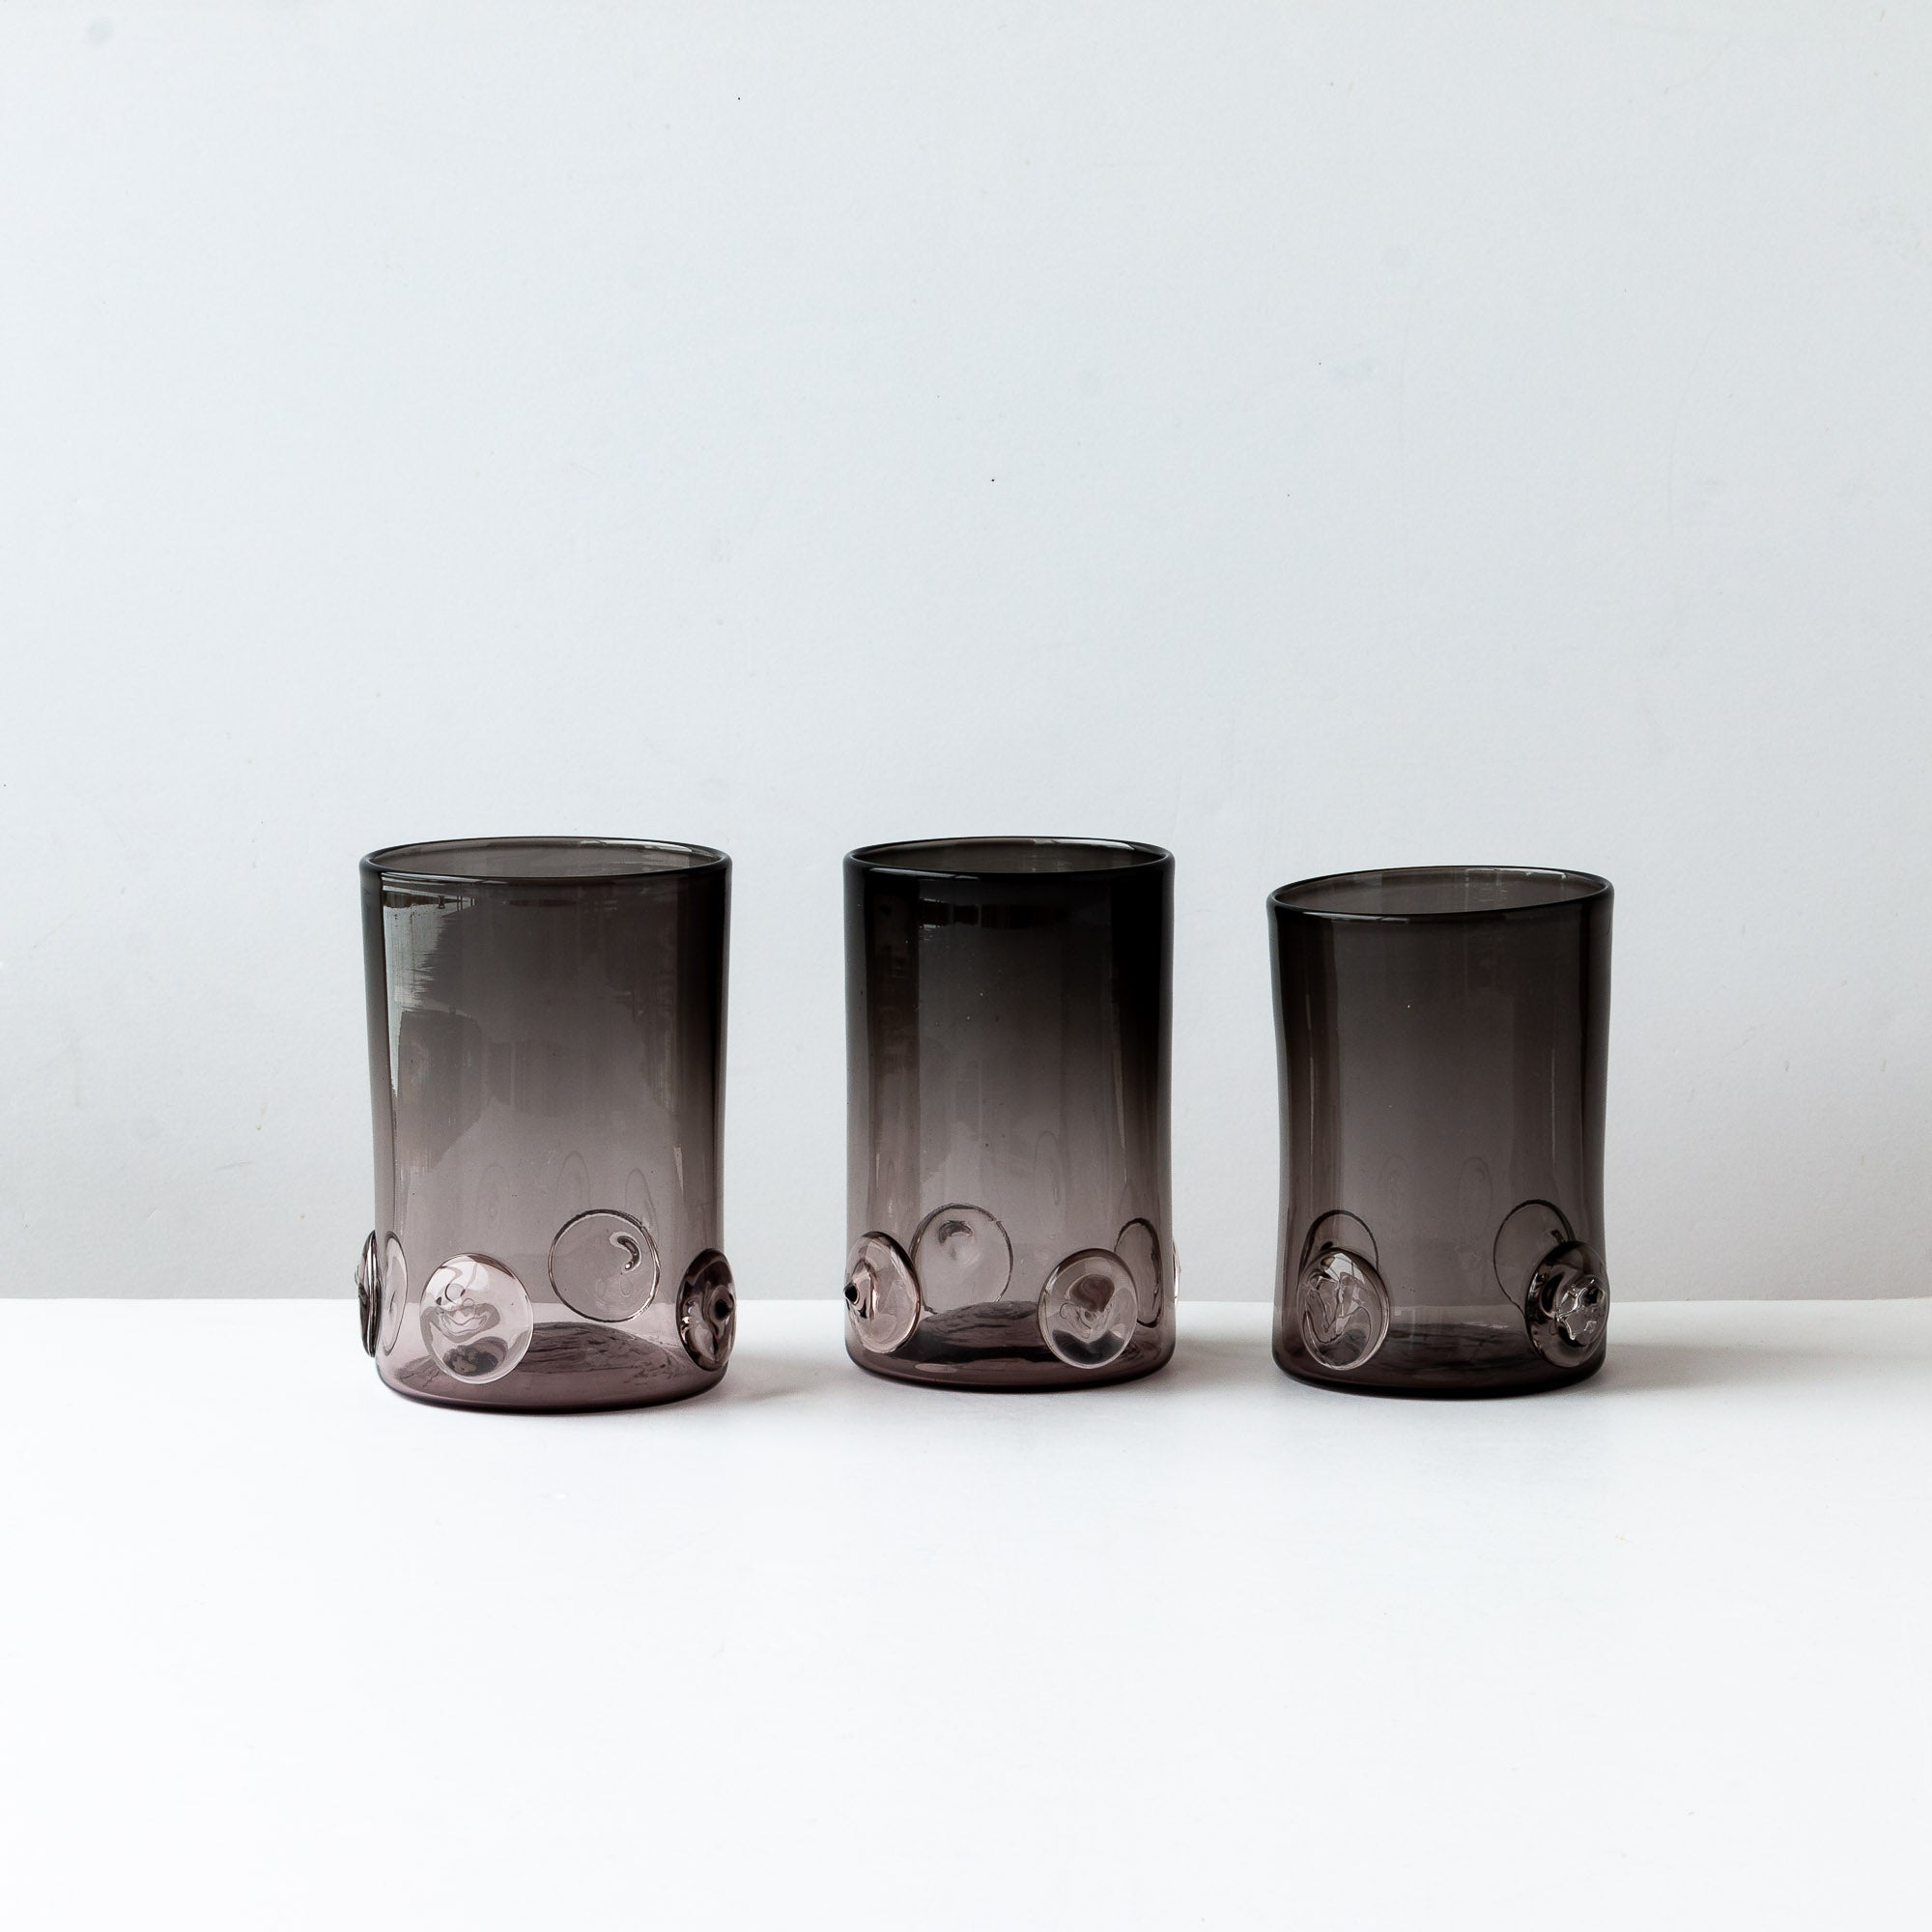 Handblown Smoke Gray Drinking Glass With Applied Droplet Decoration - Sold by Chic & Basta